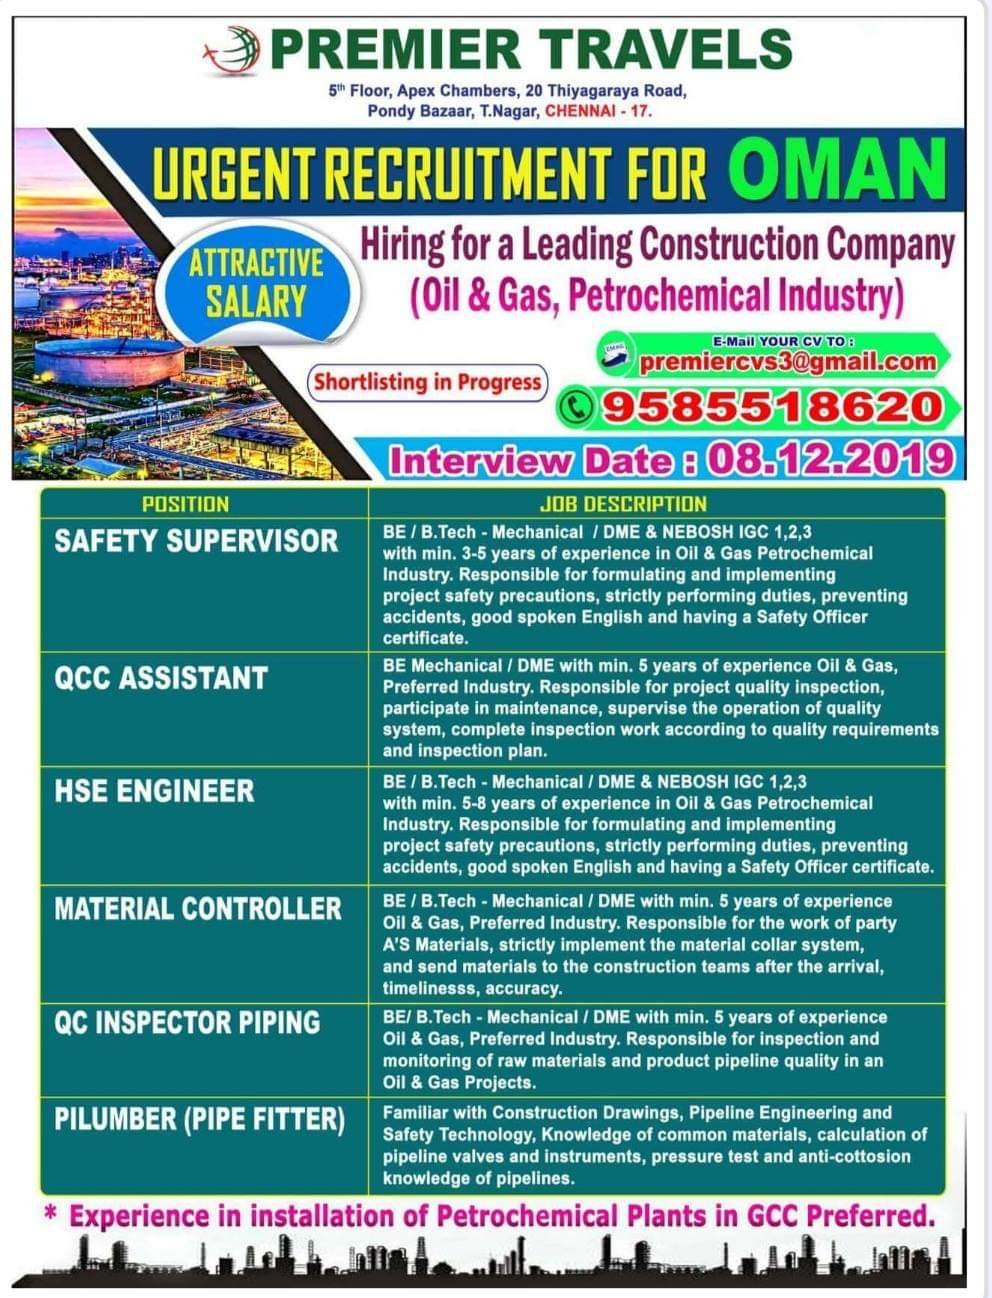 LARGE OPENINGS IN A LEADING CONSTRUCTION COMPANY IN OMAN